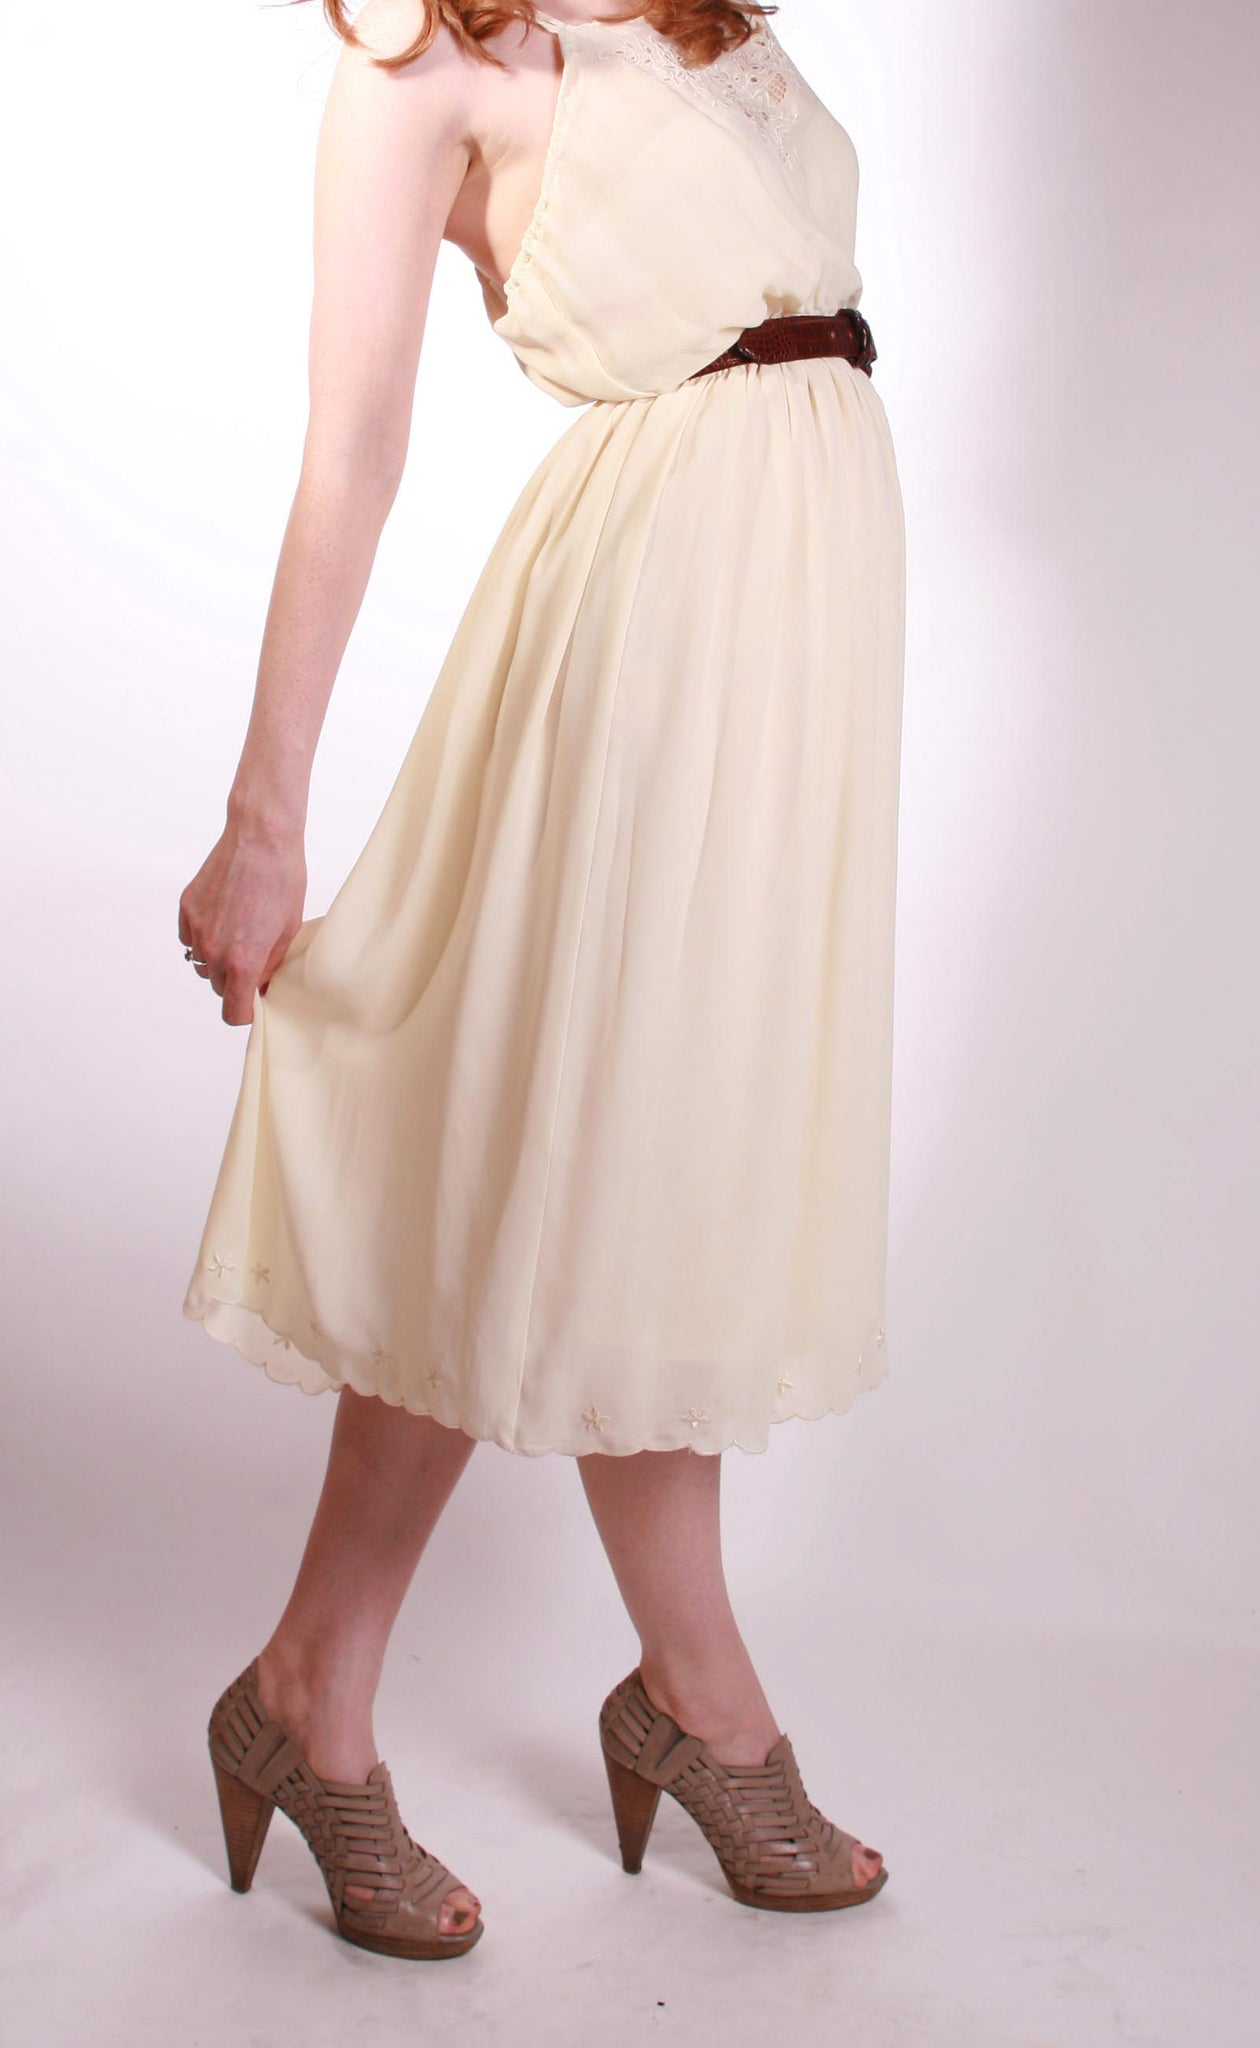 Vintage Tilly summer dress